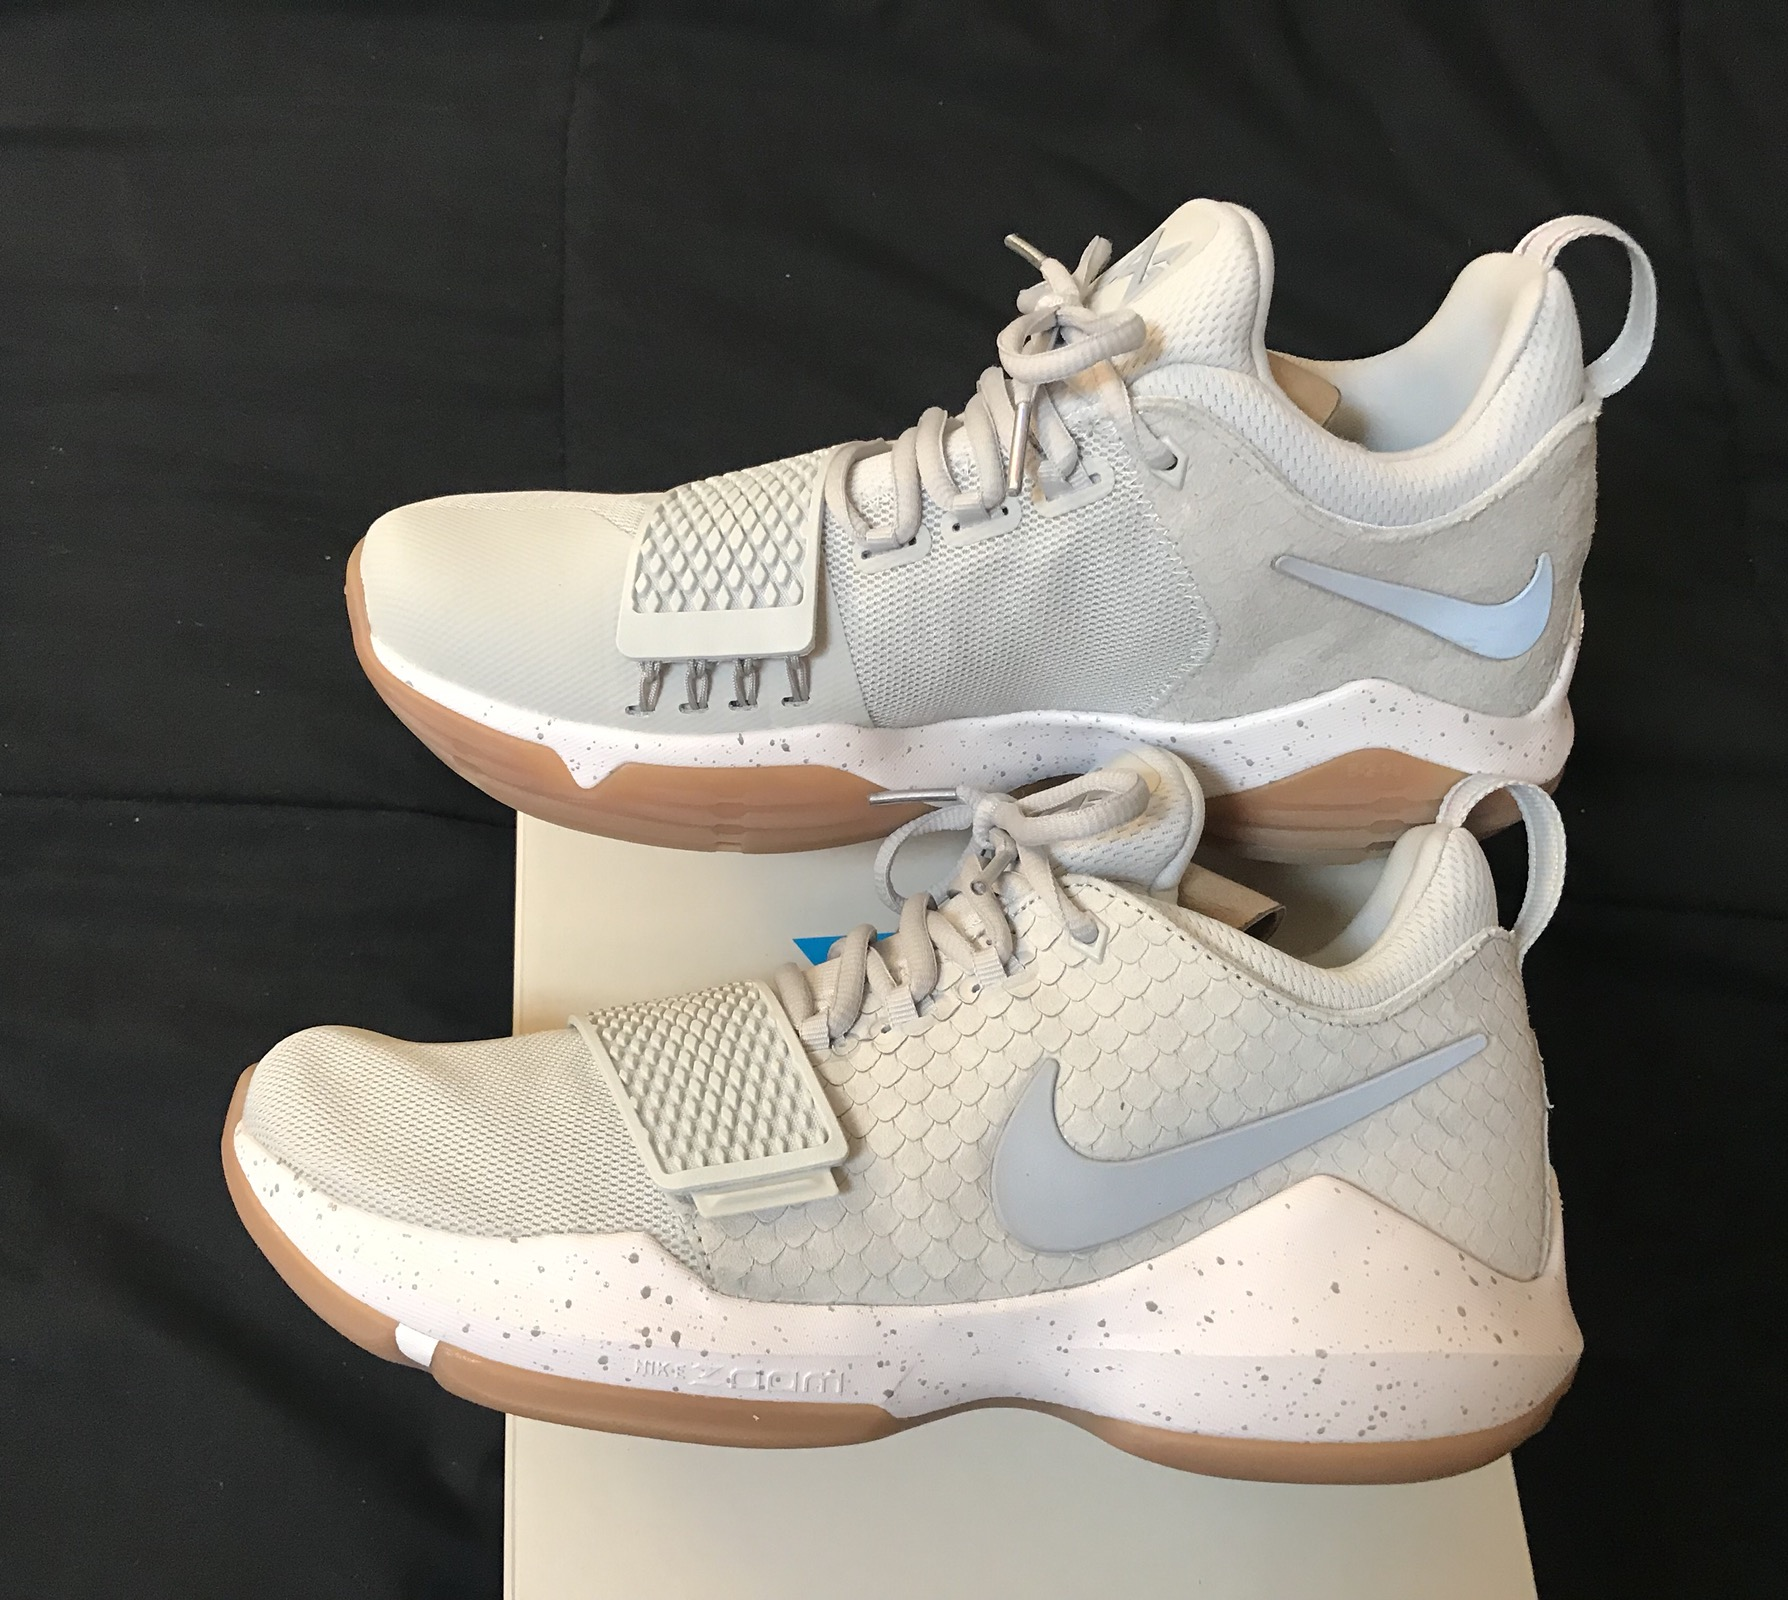 4e9b8270a6c Nike Nike Air Paul George 1 Pg1 Mens Size 9.5 Or 11 Basketball Shoes New Ds!